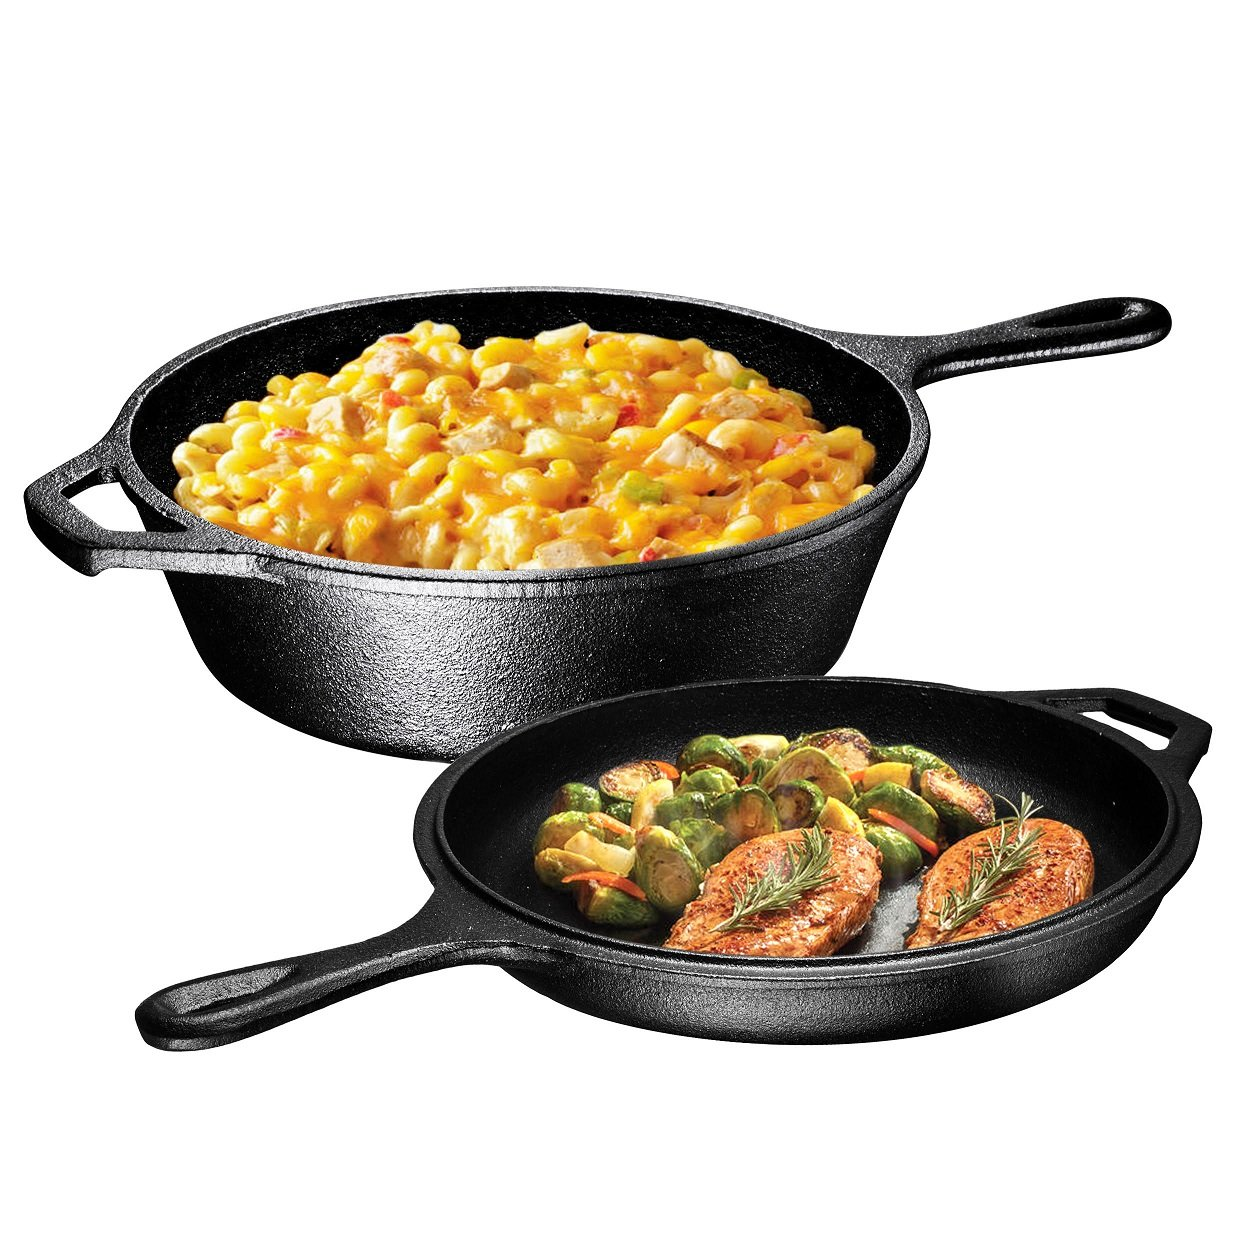 Ultimate Pre-Seasoned 2-In-1 Cast Iron Multi-Cooker By Bruntmor – Heavy Duty 3 Quart Skillet and Lid Set, Versatile Healthy Design, Non-Stick Kitchen Cookware, Use As Dutch Oven Frying Pan